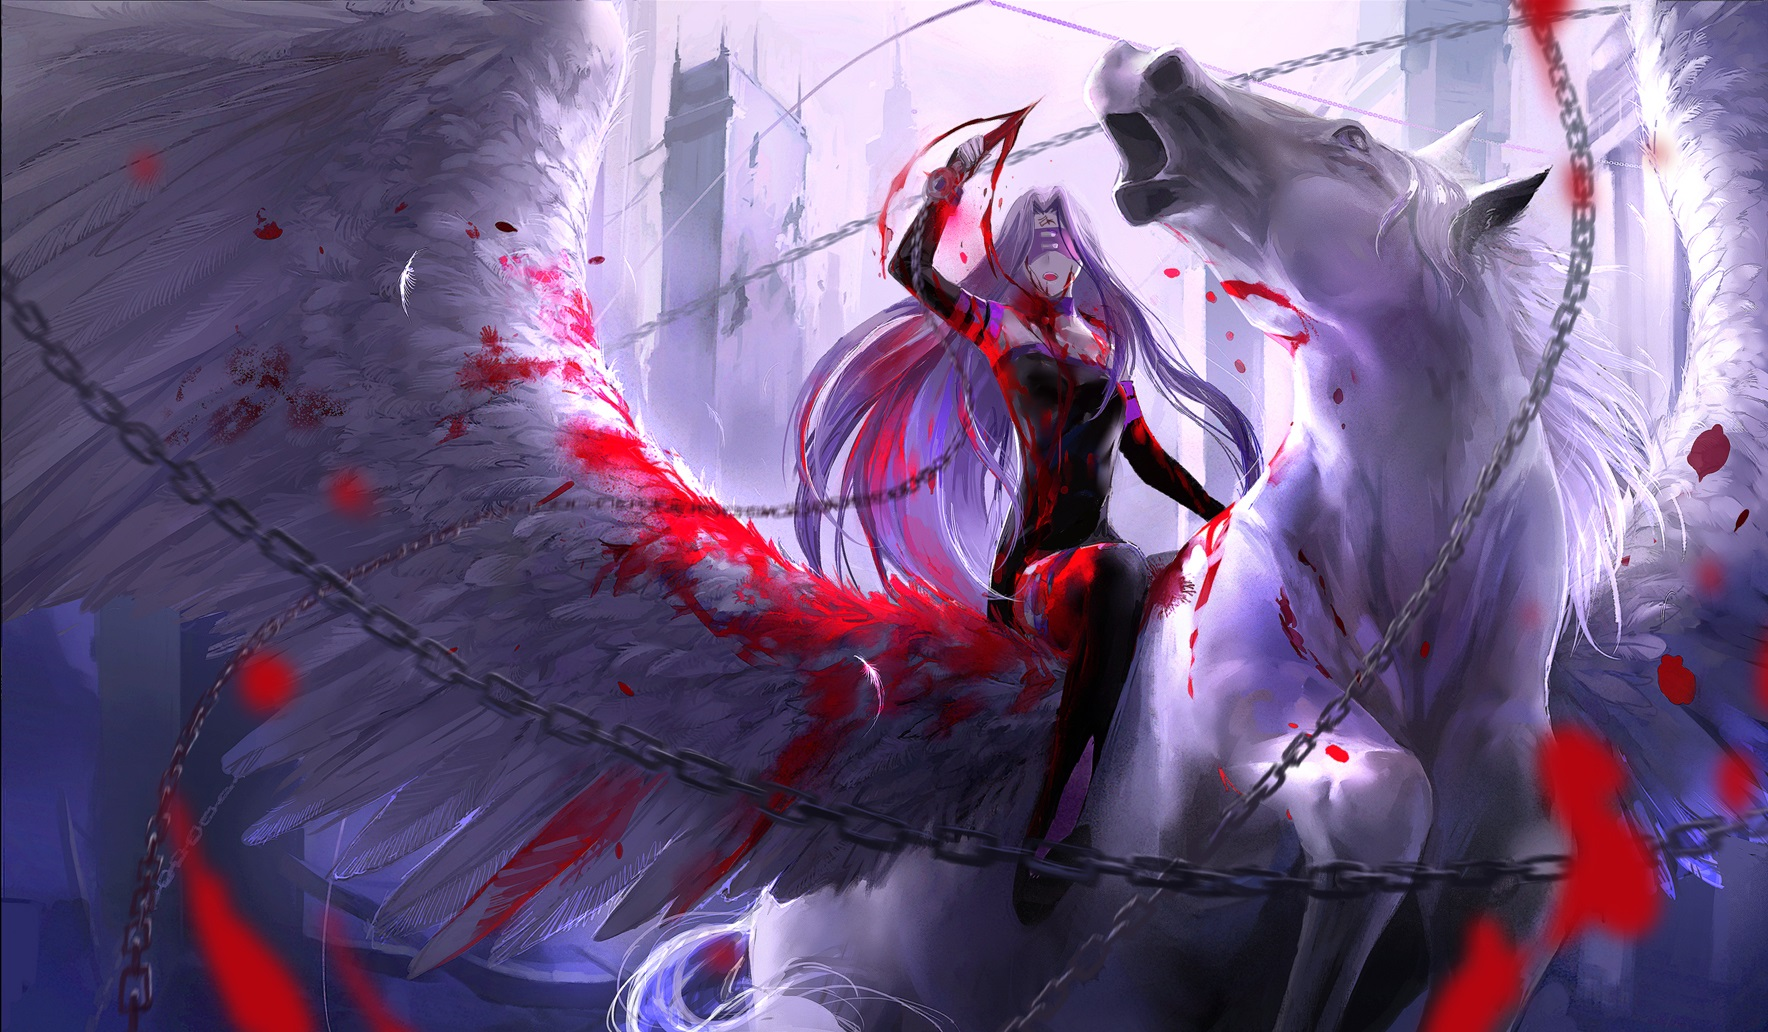 Fate/Stay Night Wallpaper and Background Image   1768x1032 ...